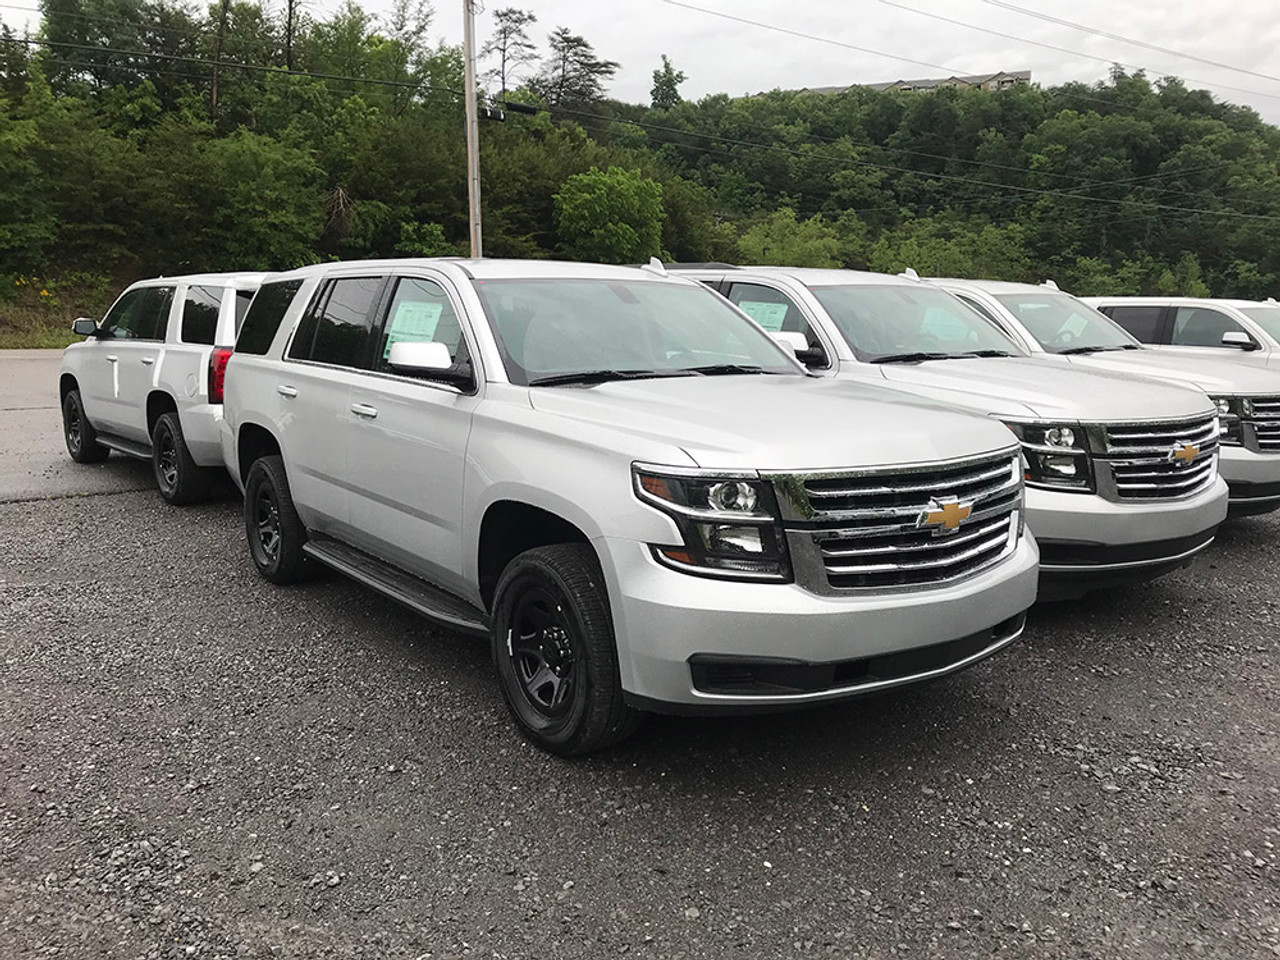 New 2020 Silver Chevy Tahoe Law Enforcement Package PPV V8 2WD, ready to be built as a Slick-Top Admin Package, choose any color LED Lights, + Delivery